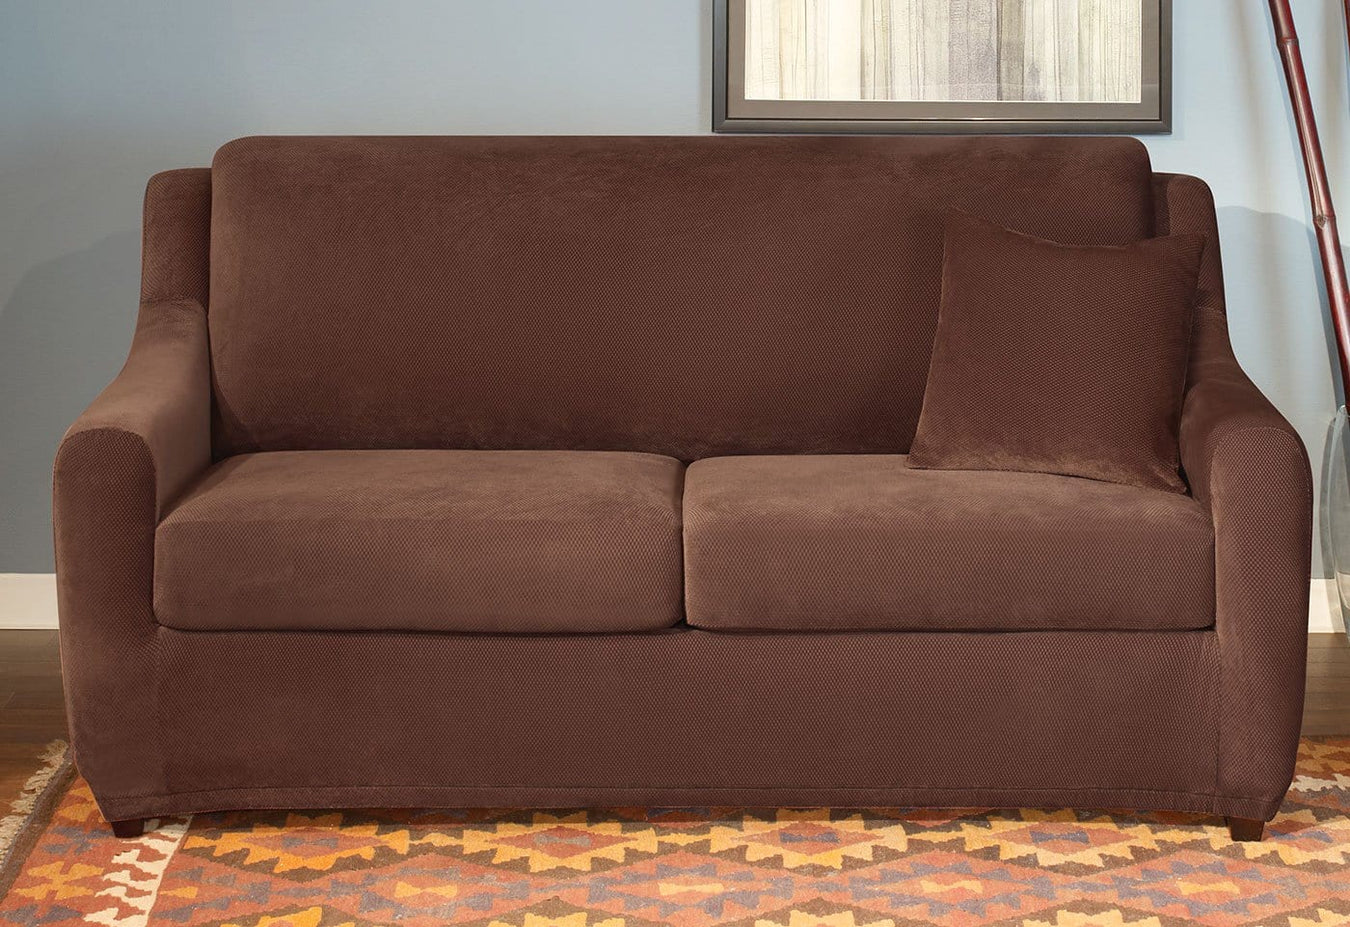 Pleasing Stretch Pique Three Piece Full Size Sleeper Sofa Slipcover Download Free Architecture Designs Grimeyleaguecom